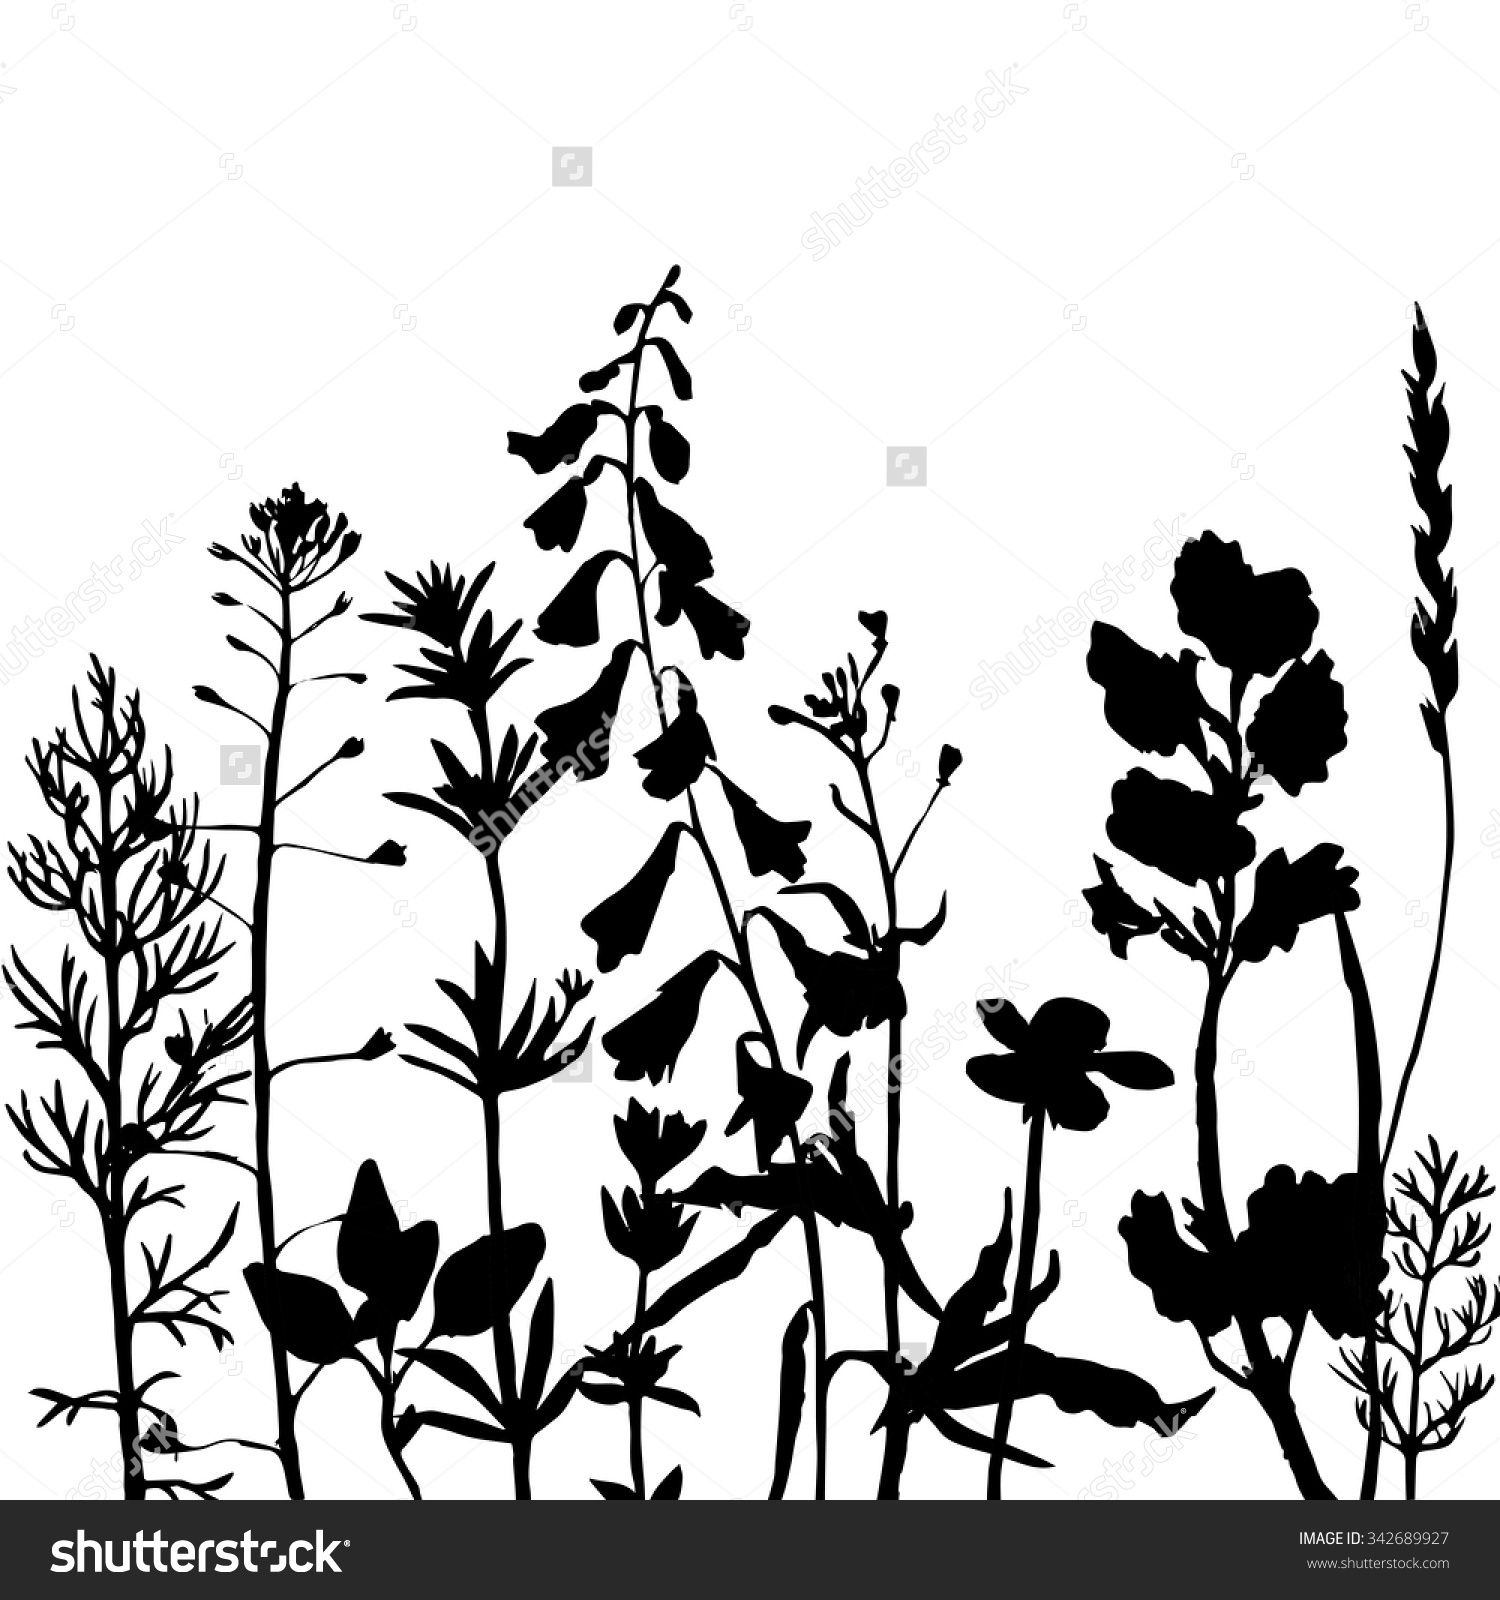 Bushes clipart silhouette. Stock vector grass silhouettes